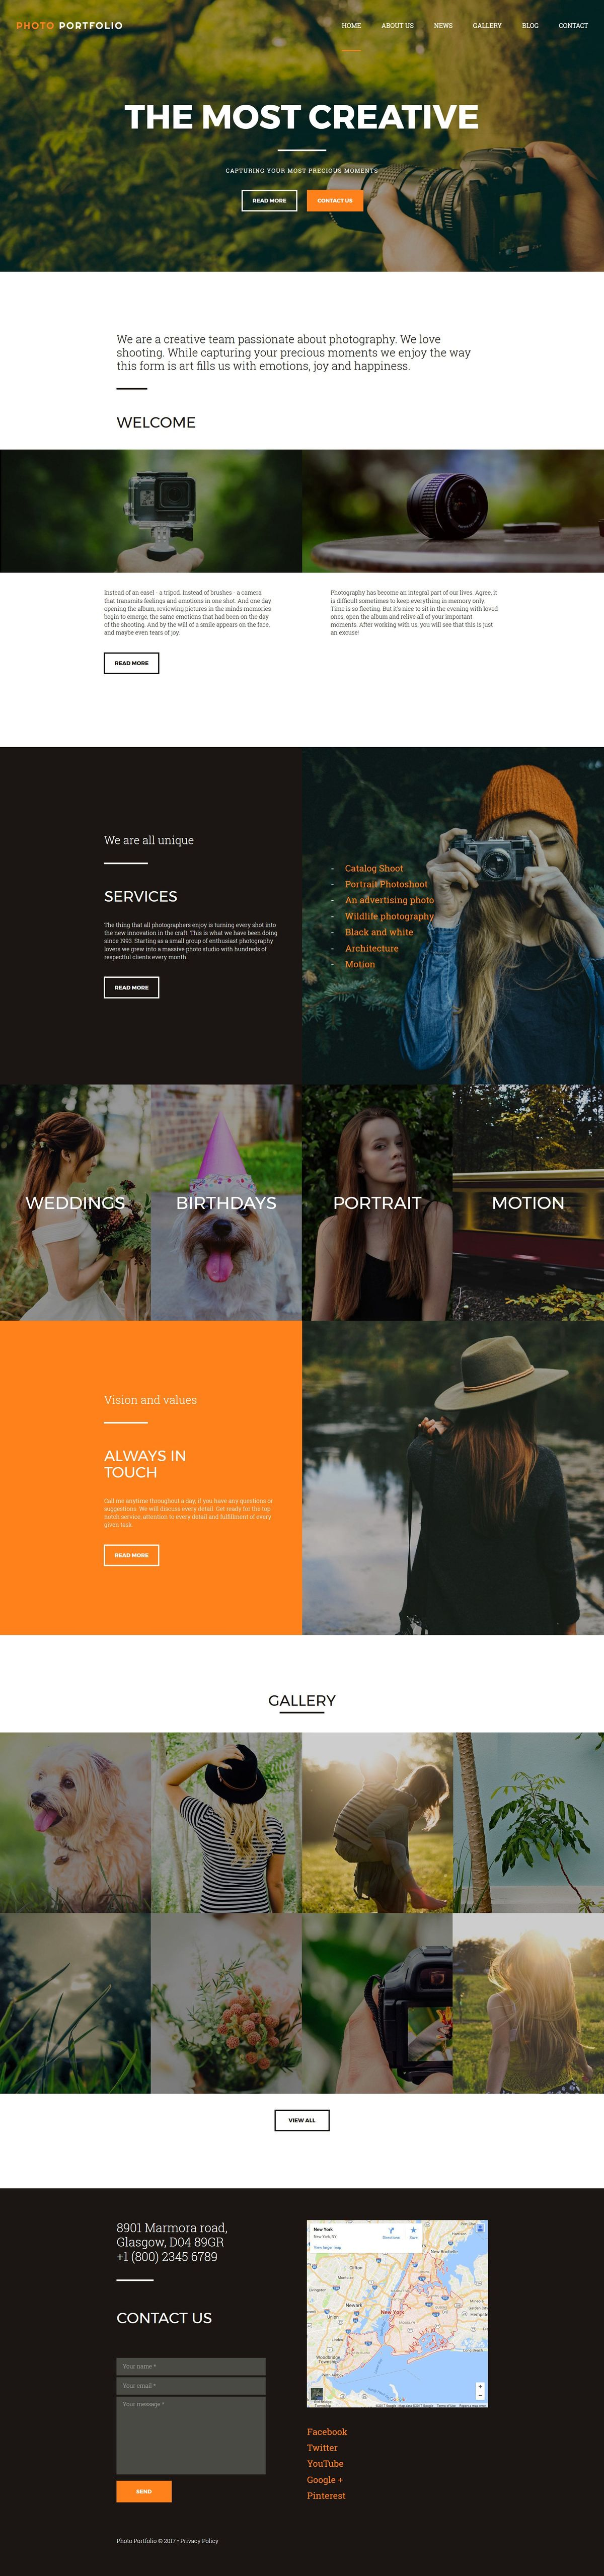 Photo Gallery | Gallery Templates